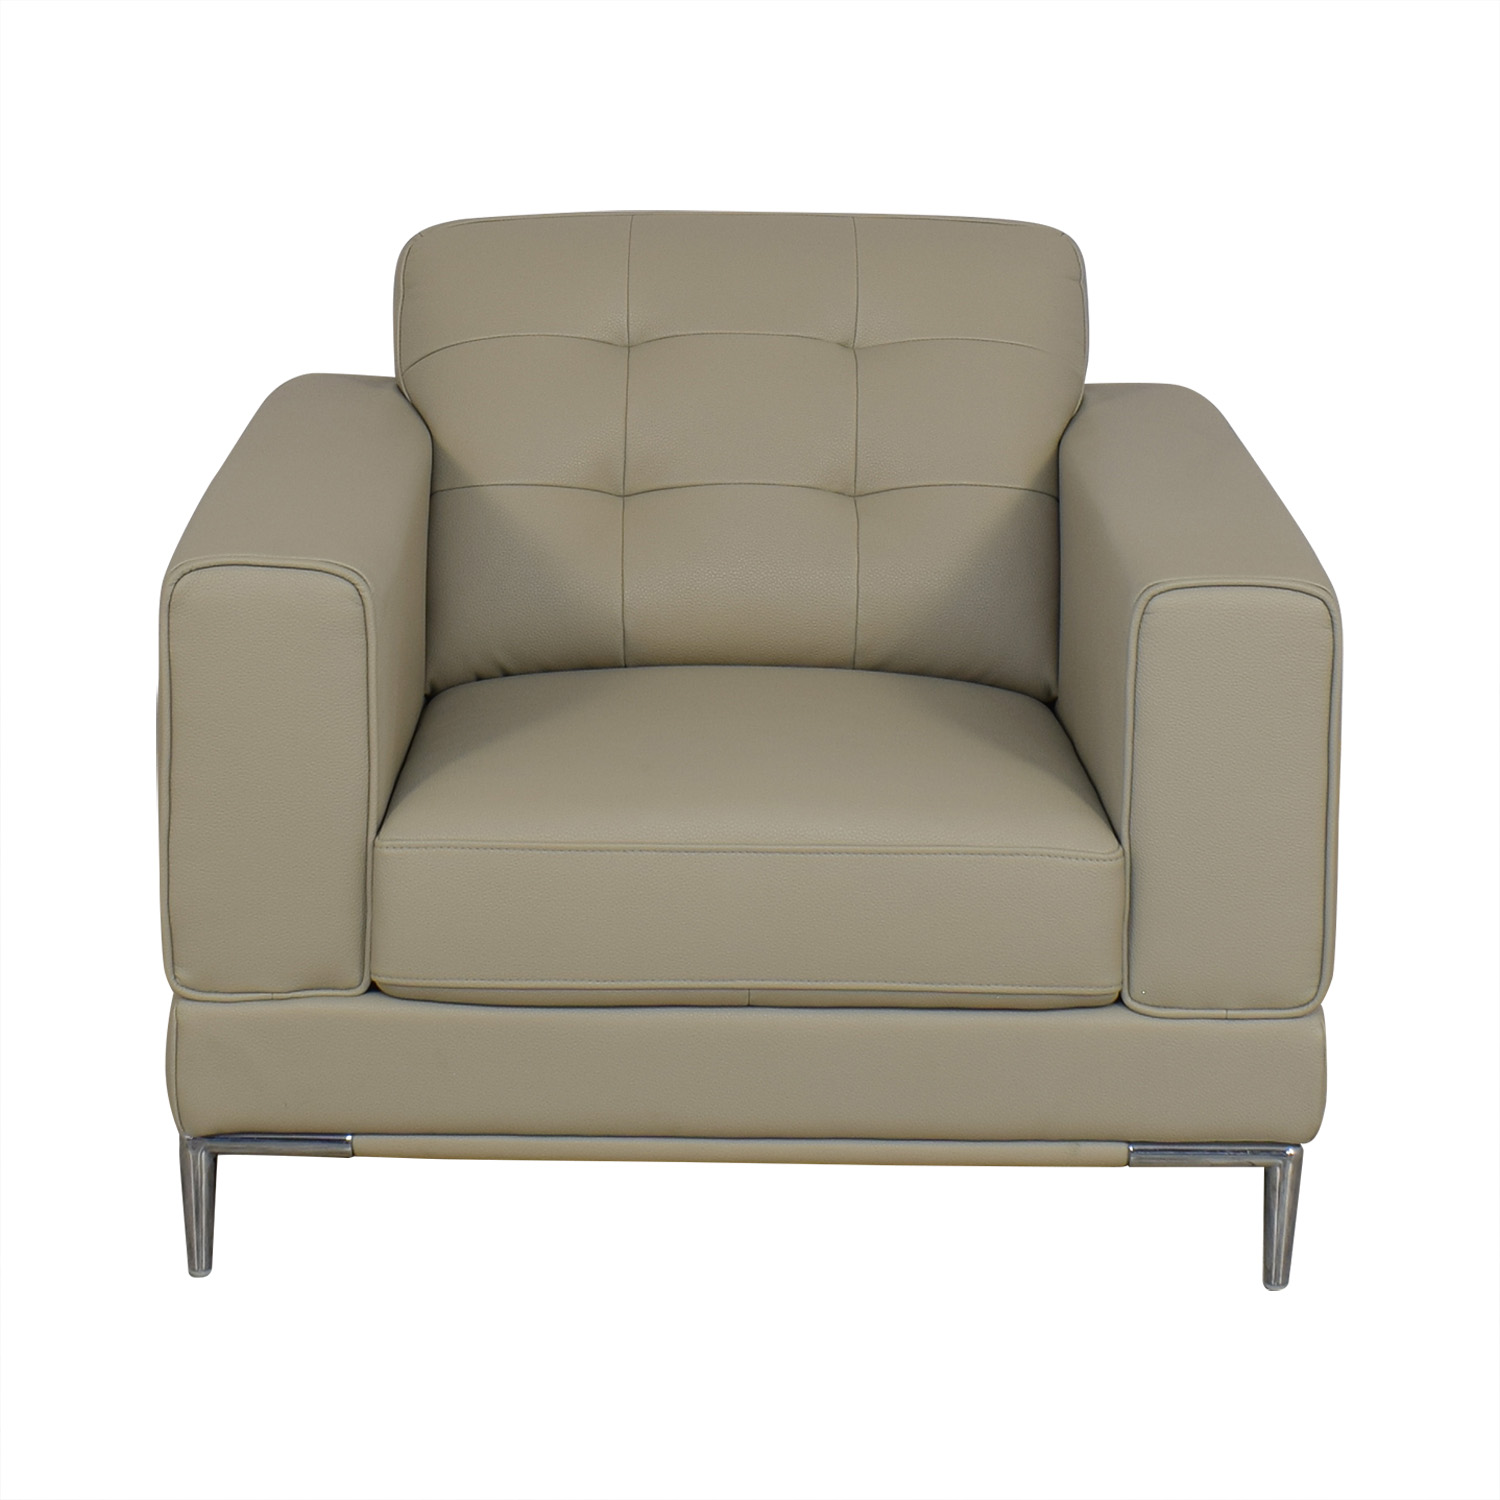 buy Modani Modern Lounge Chair Modani Chairs